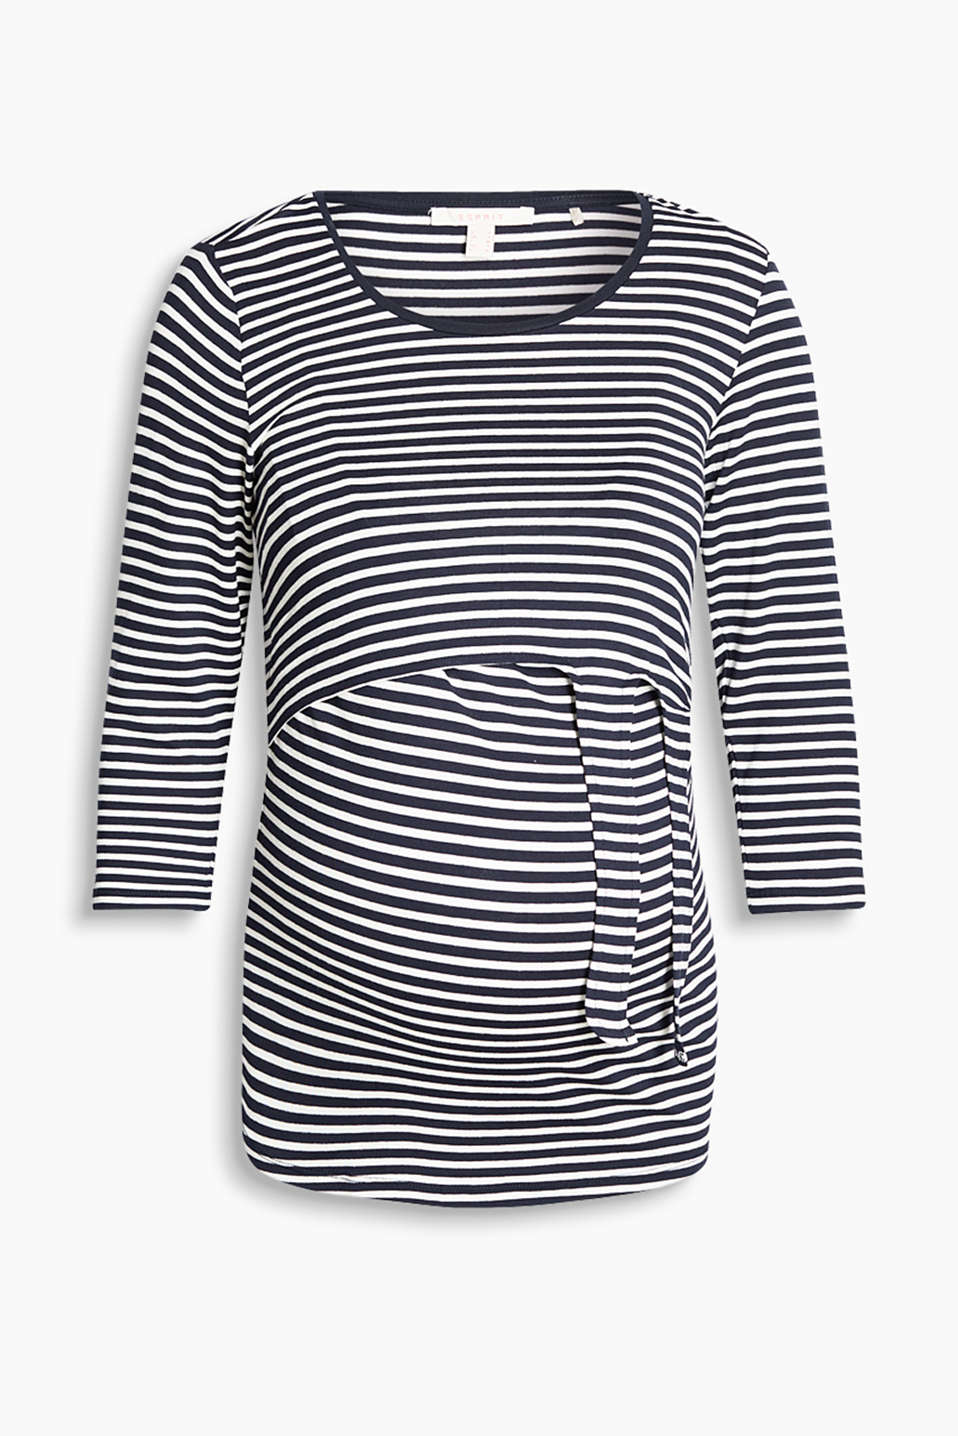 Stretch jersey top with nautical stripes for breastfeeding, in a layered design featuring a knot detail